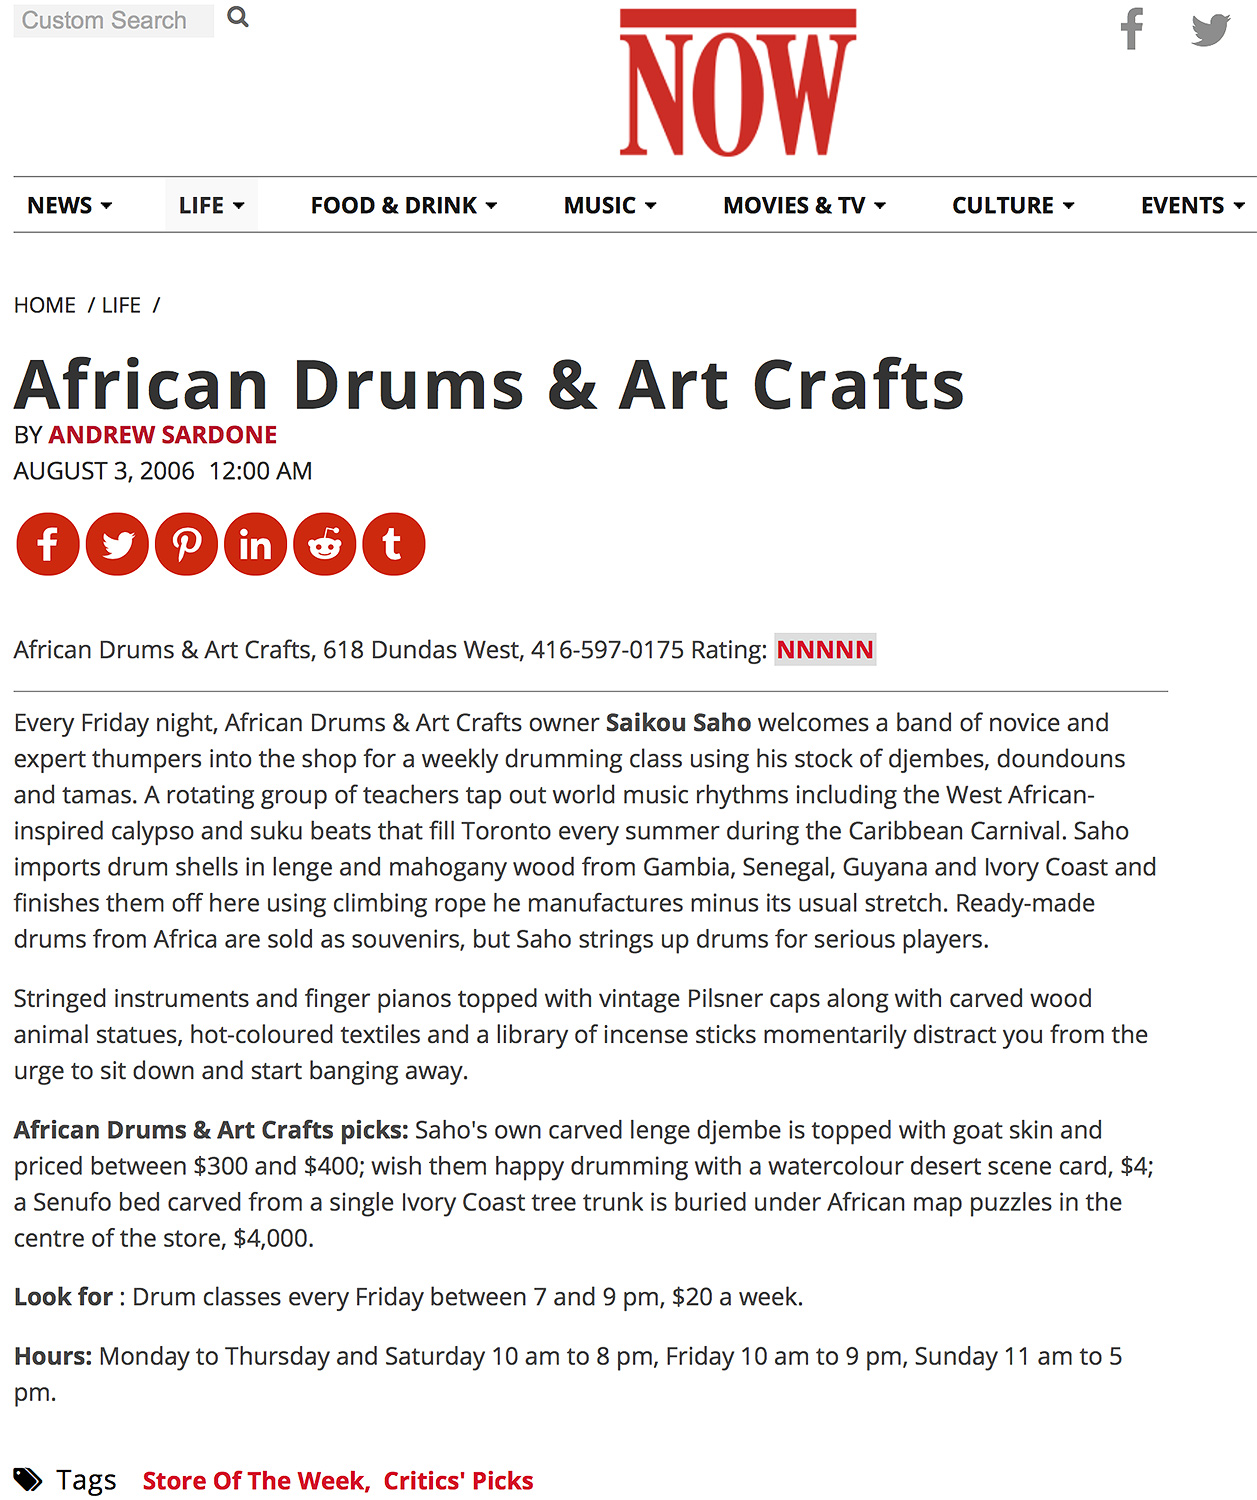 African Drums and Art Crafts Saikou Kensington Market Dundas St West Toronto Canada Shop Workshops Lessons Classes Masks Furniture Fabric Drum Circles Crafts